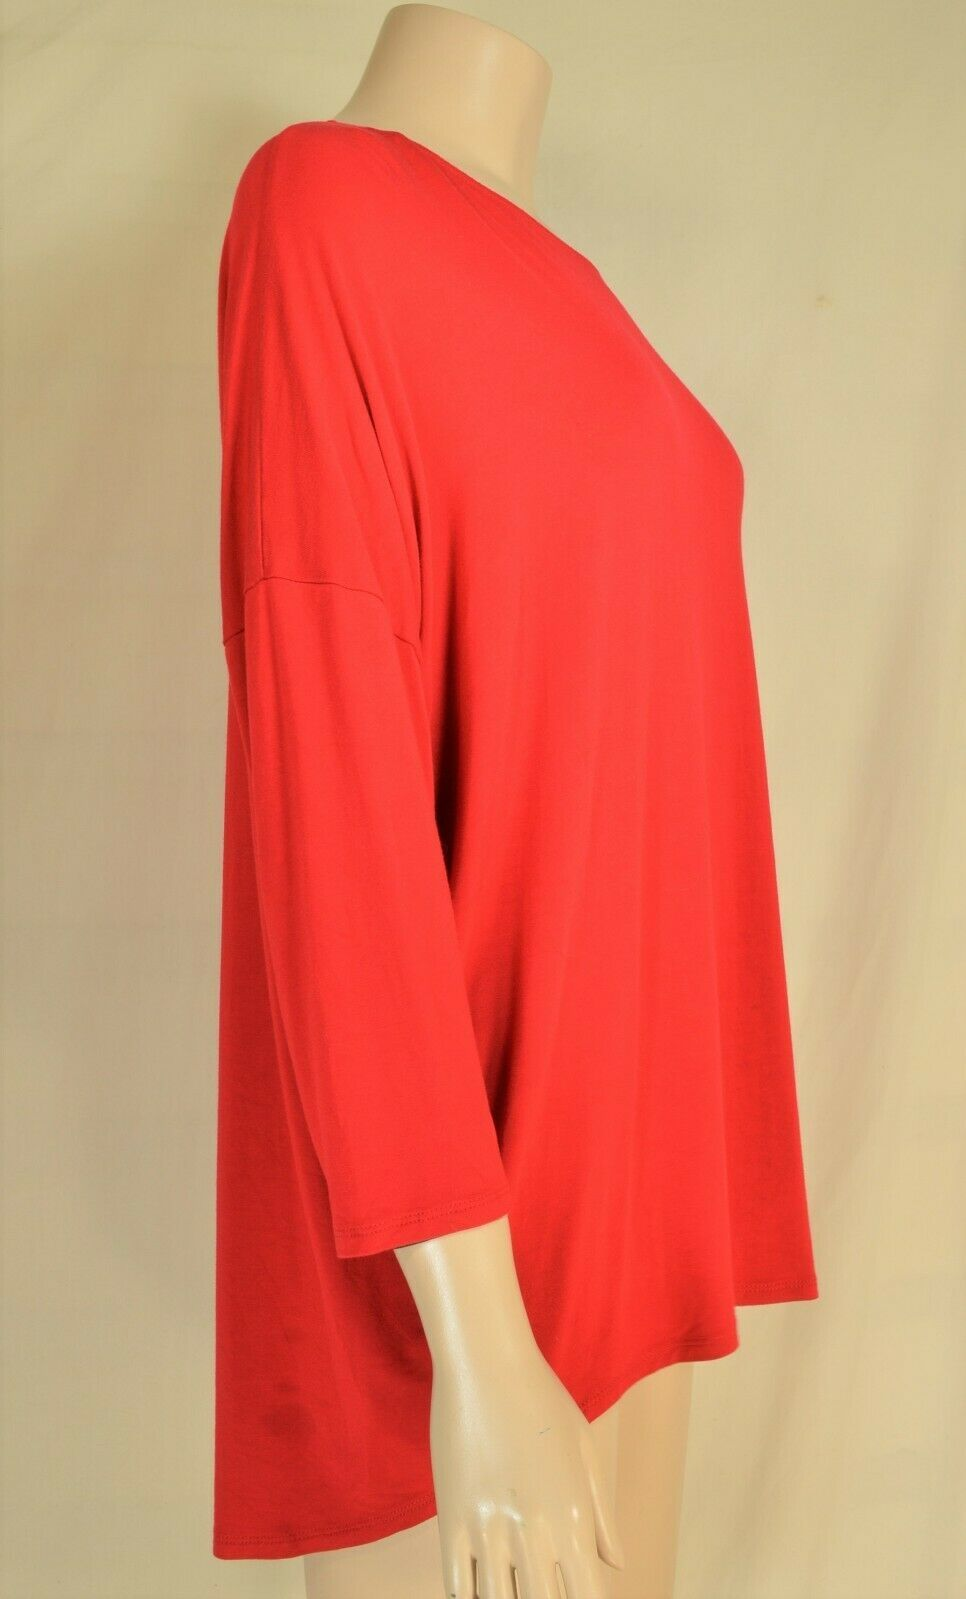 Planet Lauren Grossman top SZ medium bright red dolman sleeves hi lo longer in